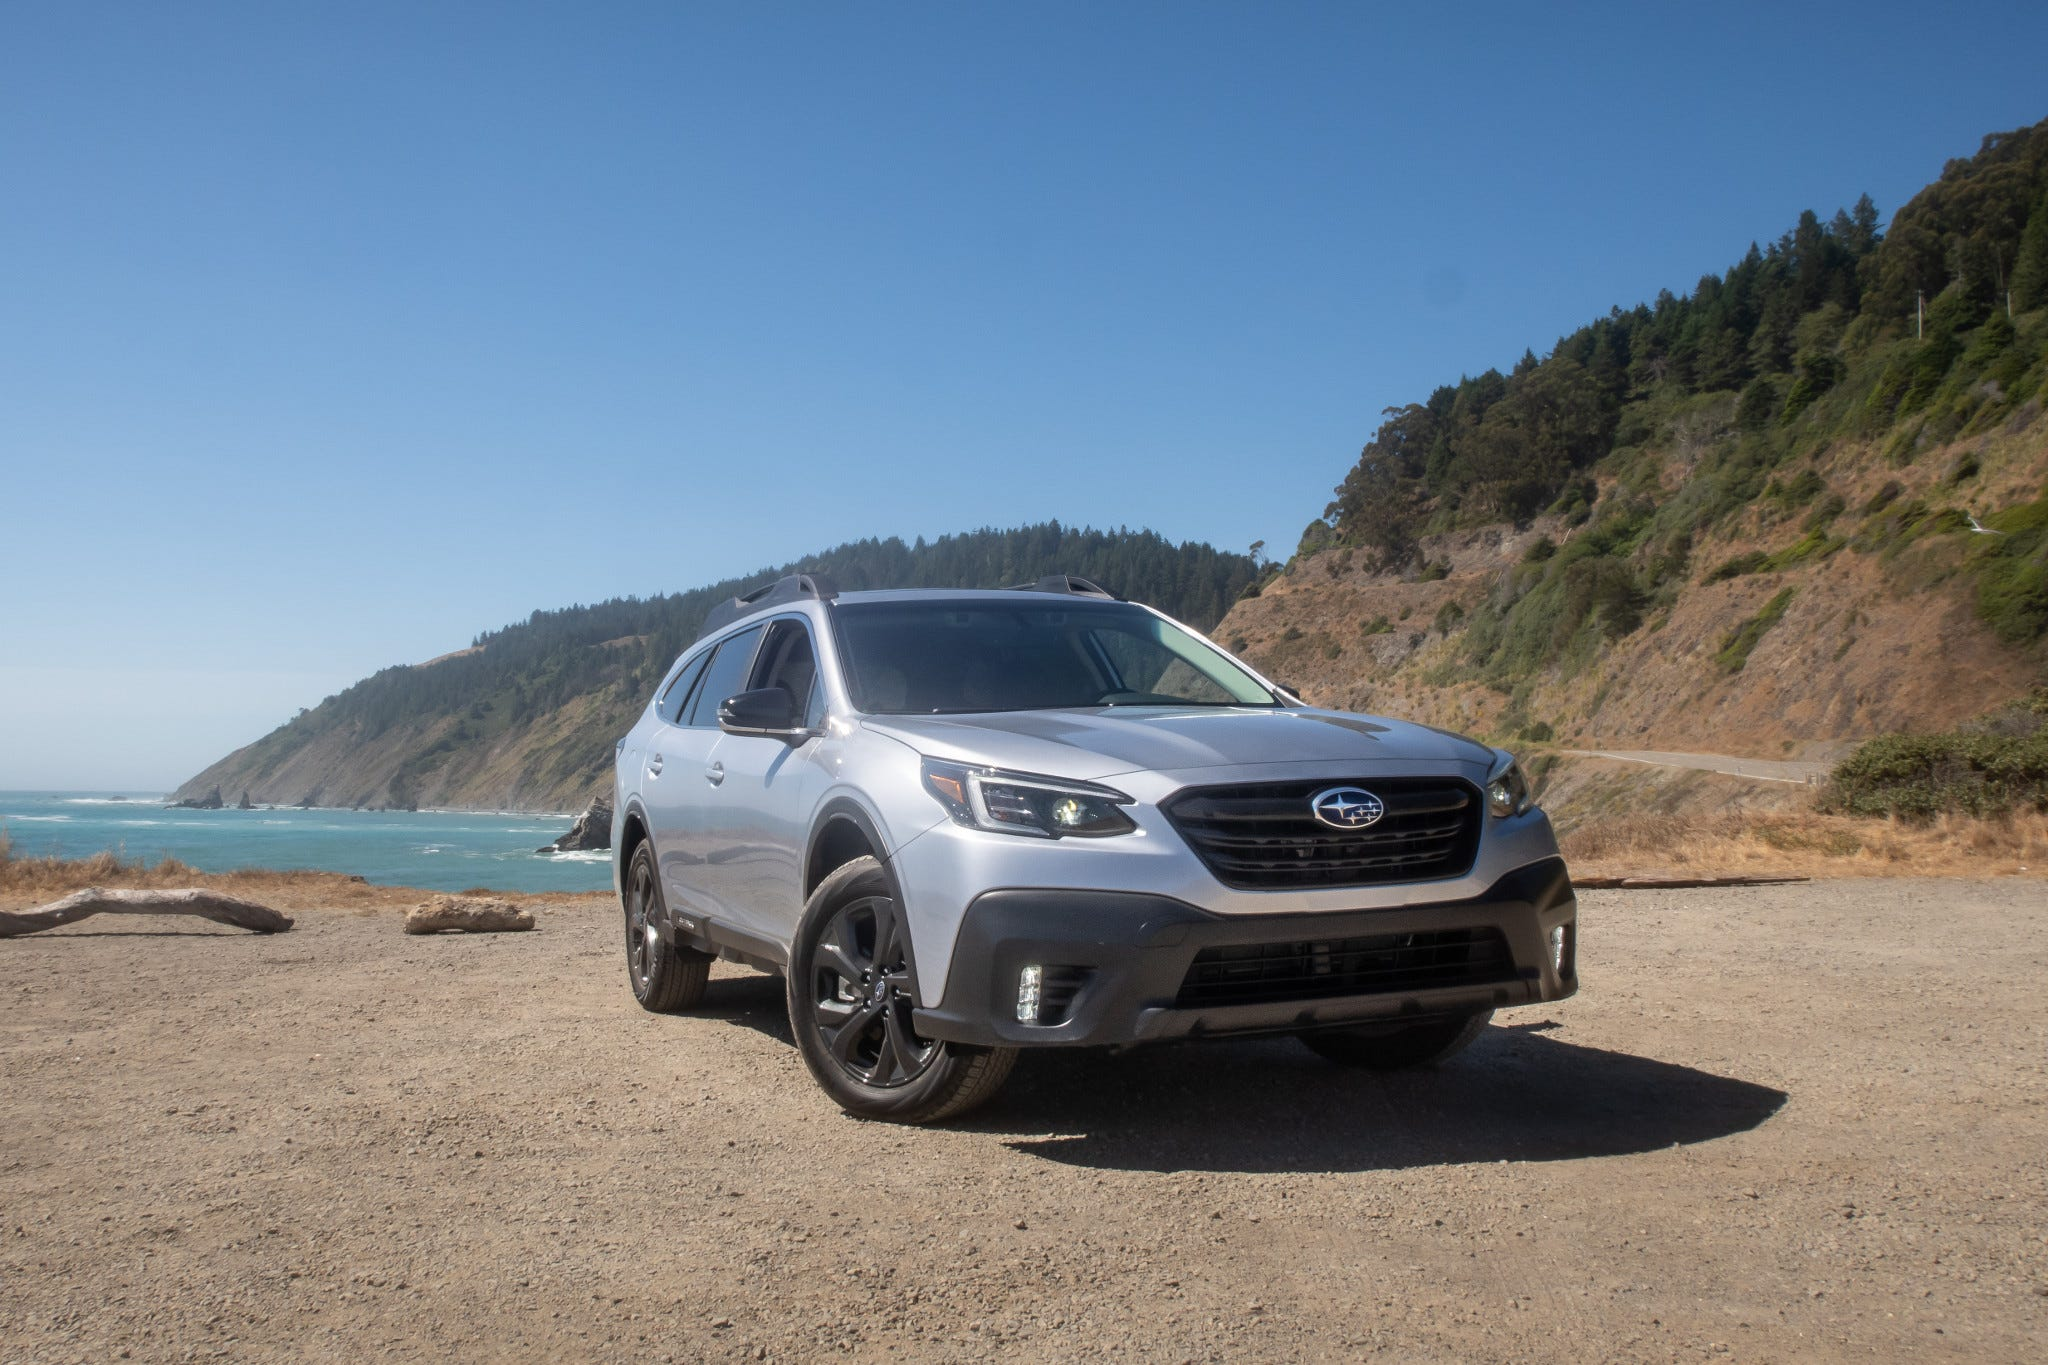 2020 Subaru Outback first drive, review: A budget Volvo CrossCountry